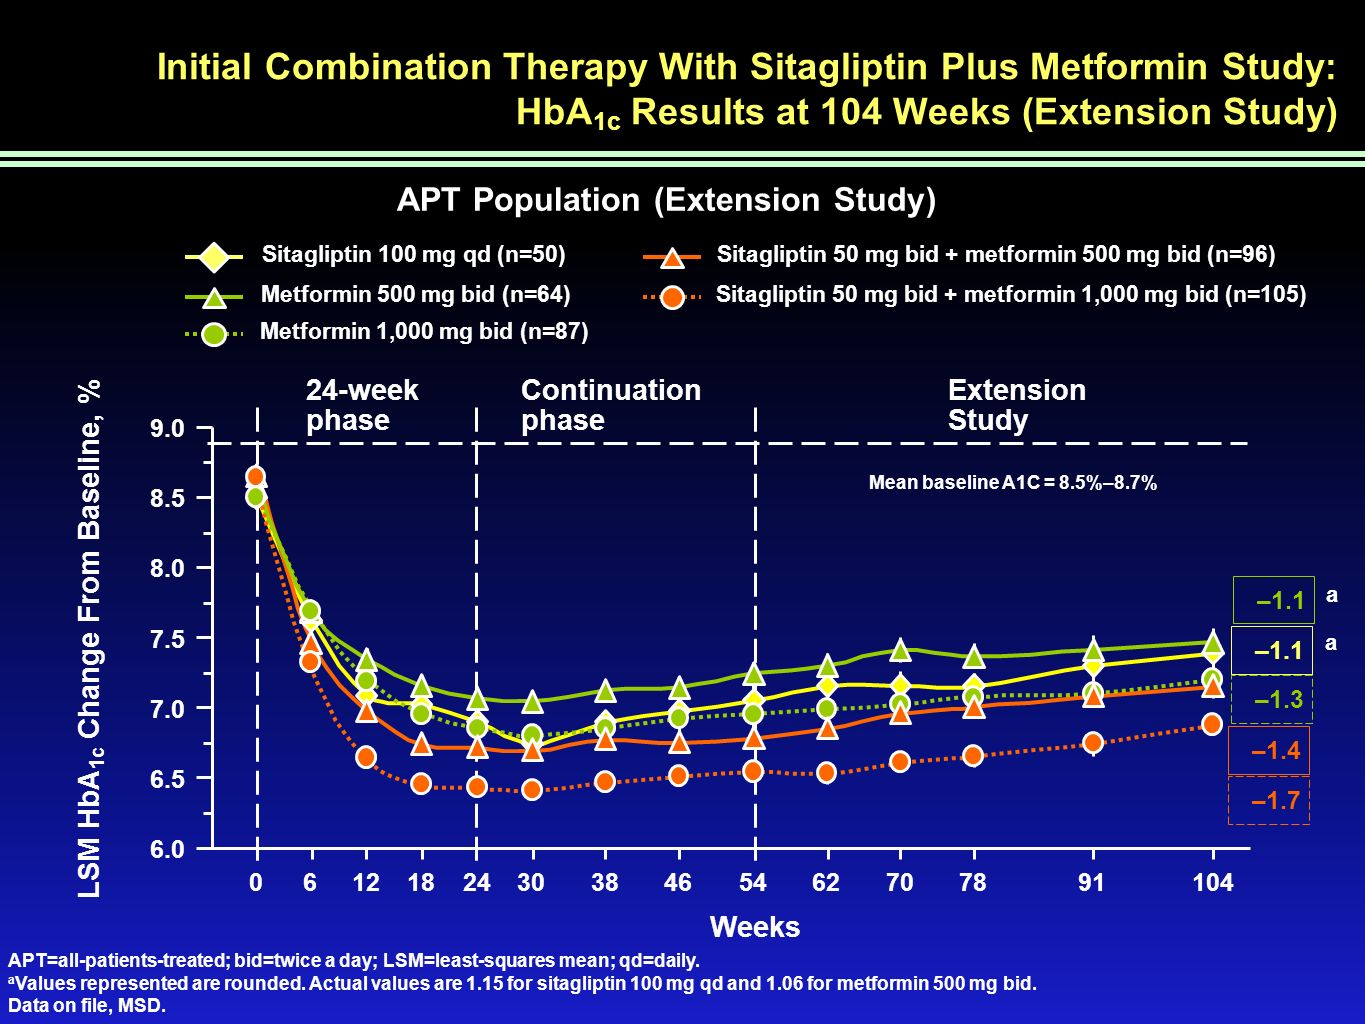 Initial Combination Therapy With Sitagliptin Plus Metformin Study: HbA1c Results at 104 Weeks (Extension Study)